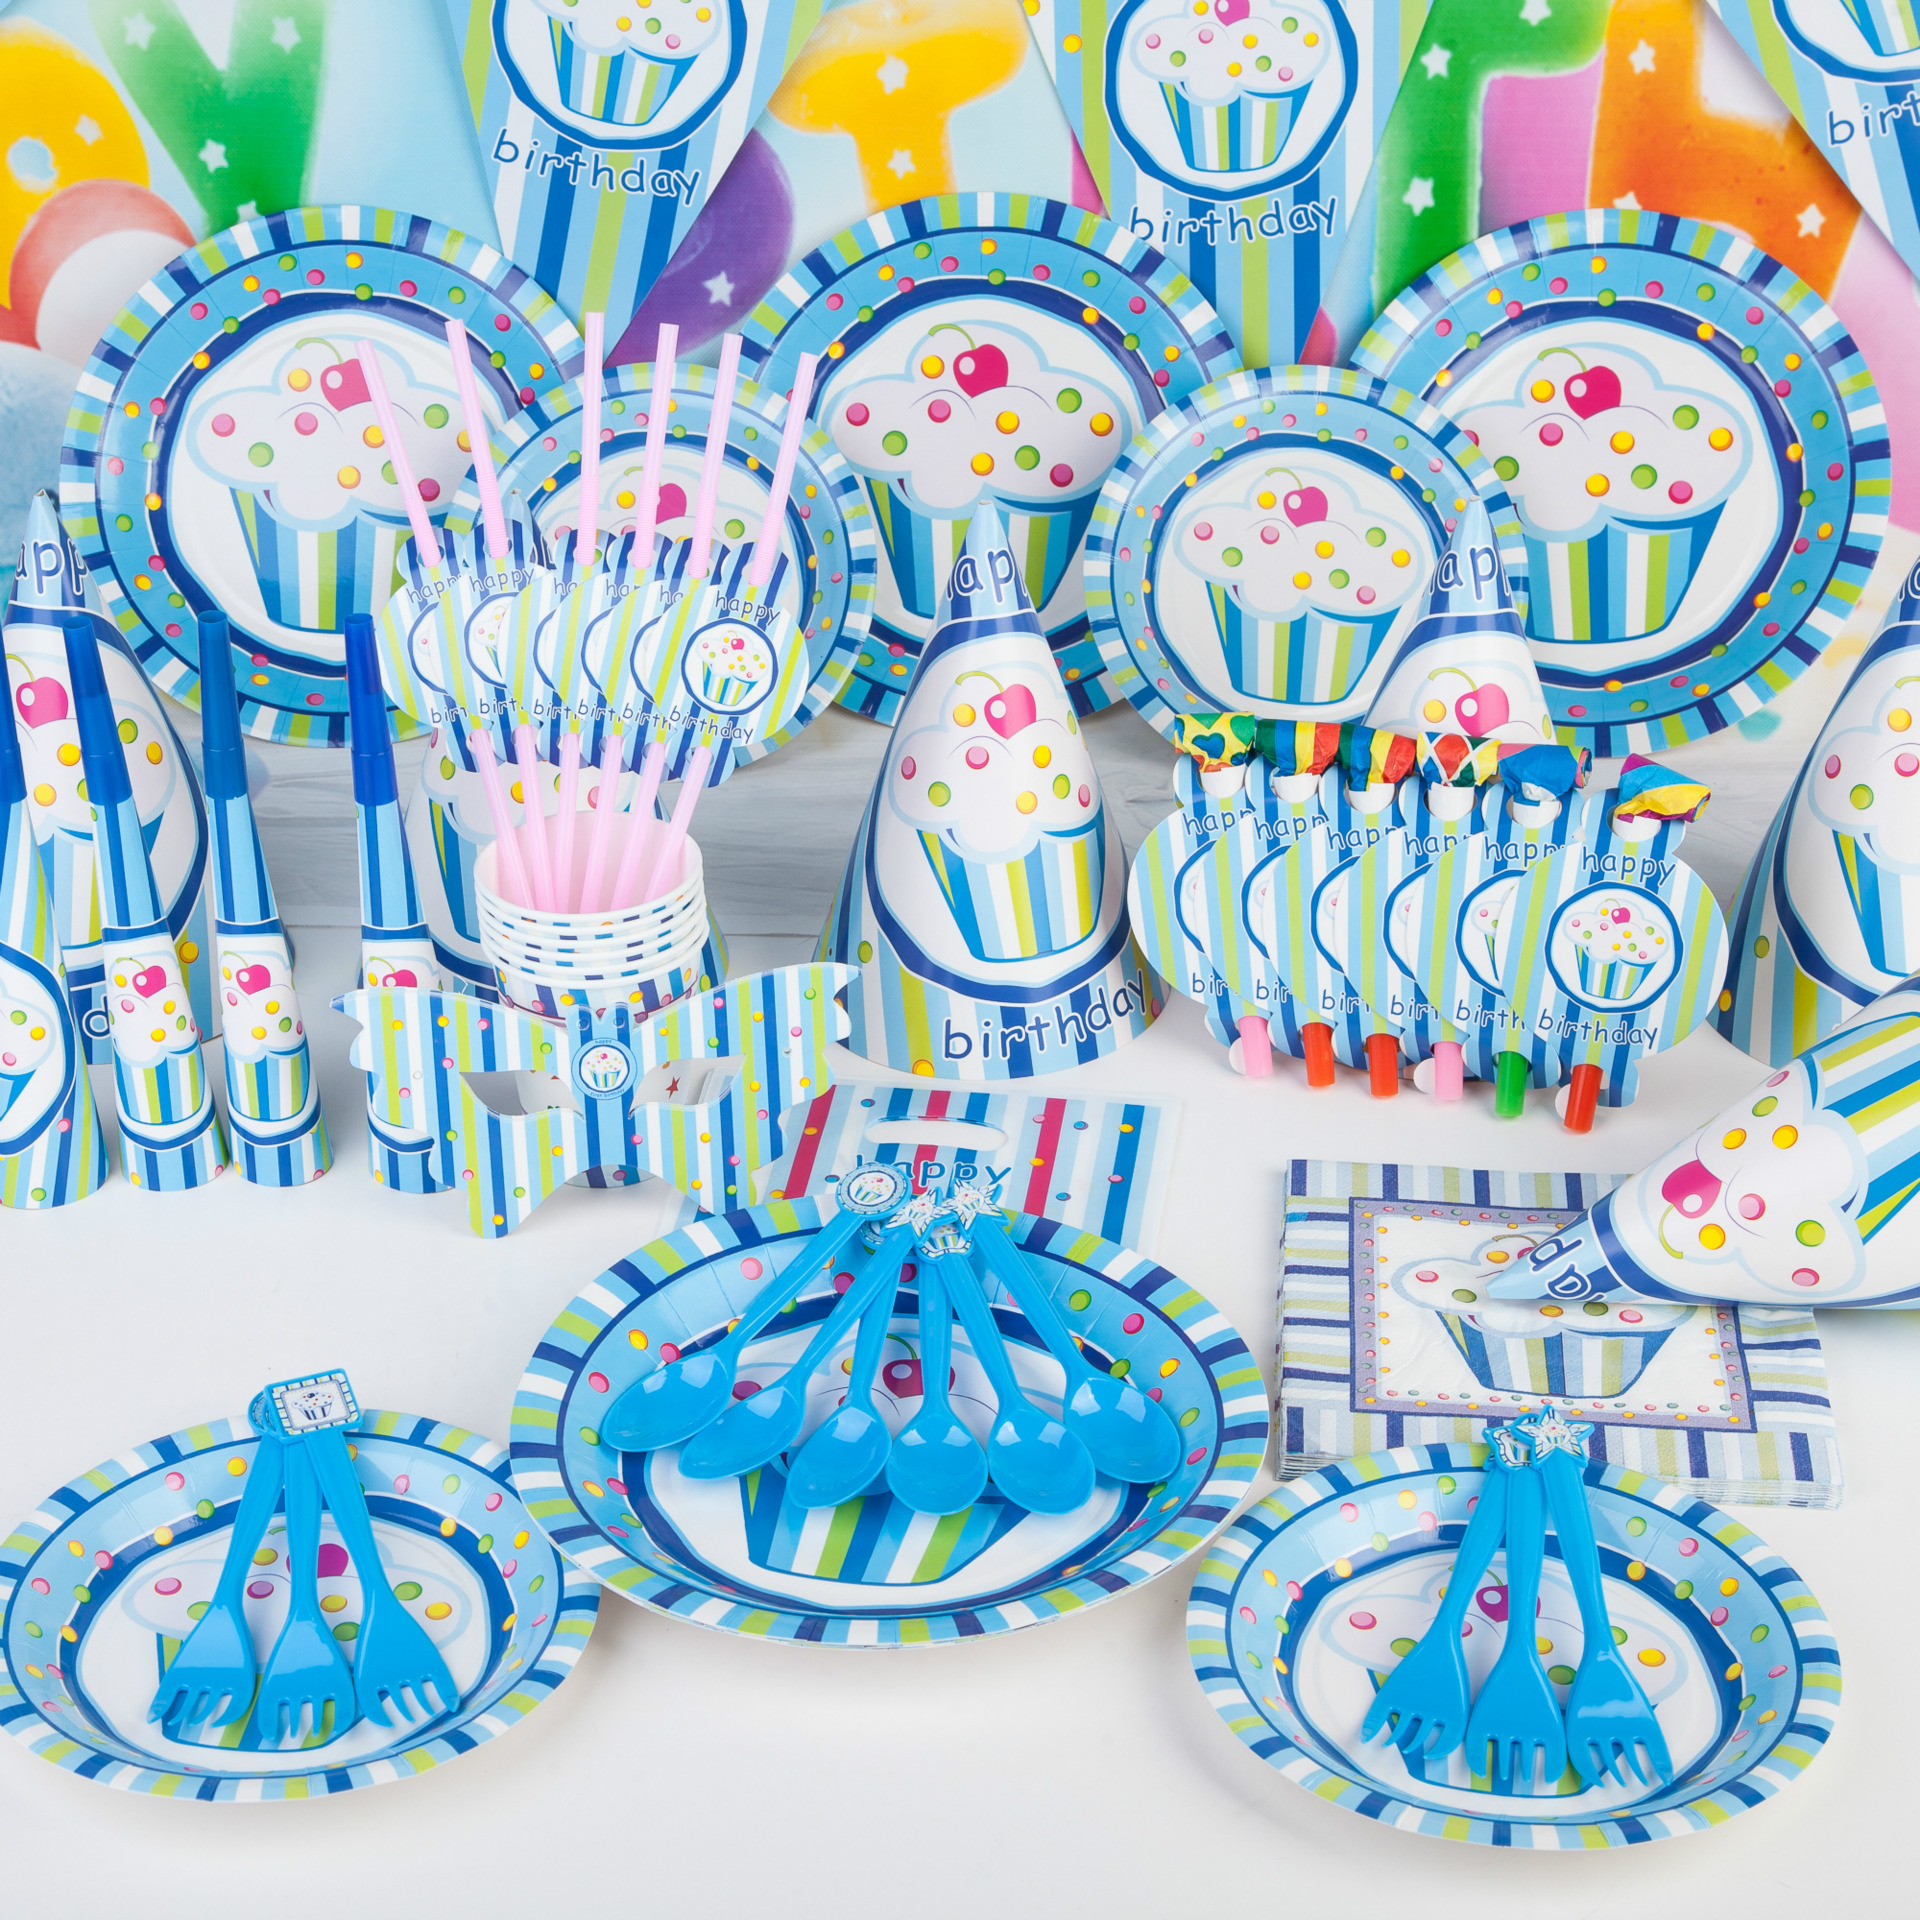 Baby Party Supplies Set 6 People Blue Ice Cream Theme Birthday Party Supplies Set Baby Gift Child Kids Boys Party Supplies Set